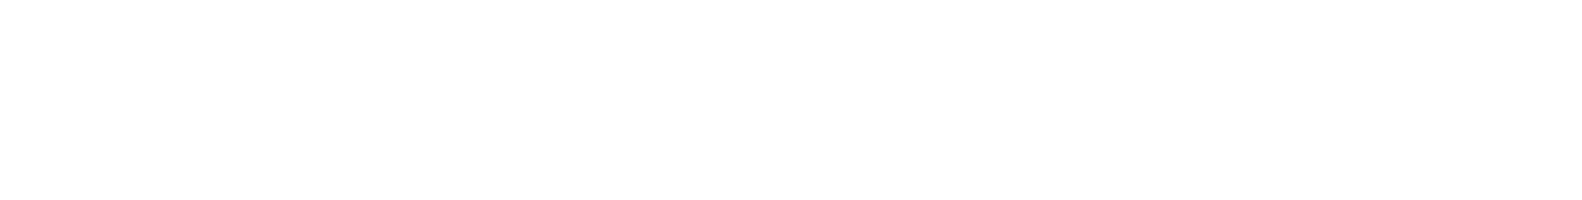 College of Arts and Sciences, Department of Communication, The University of Oklahoma